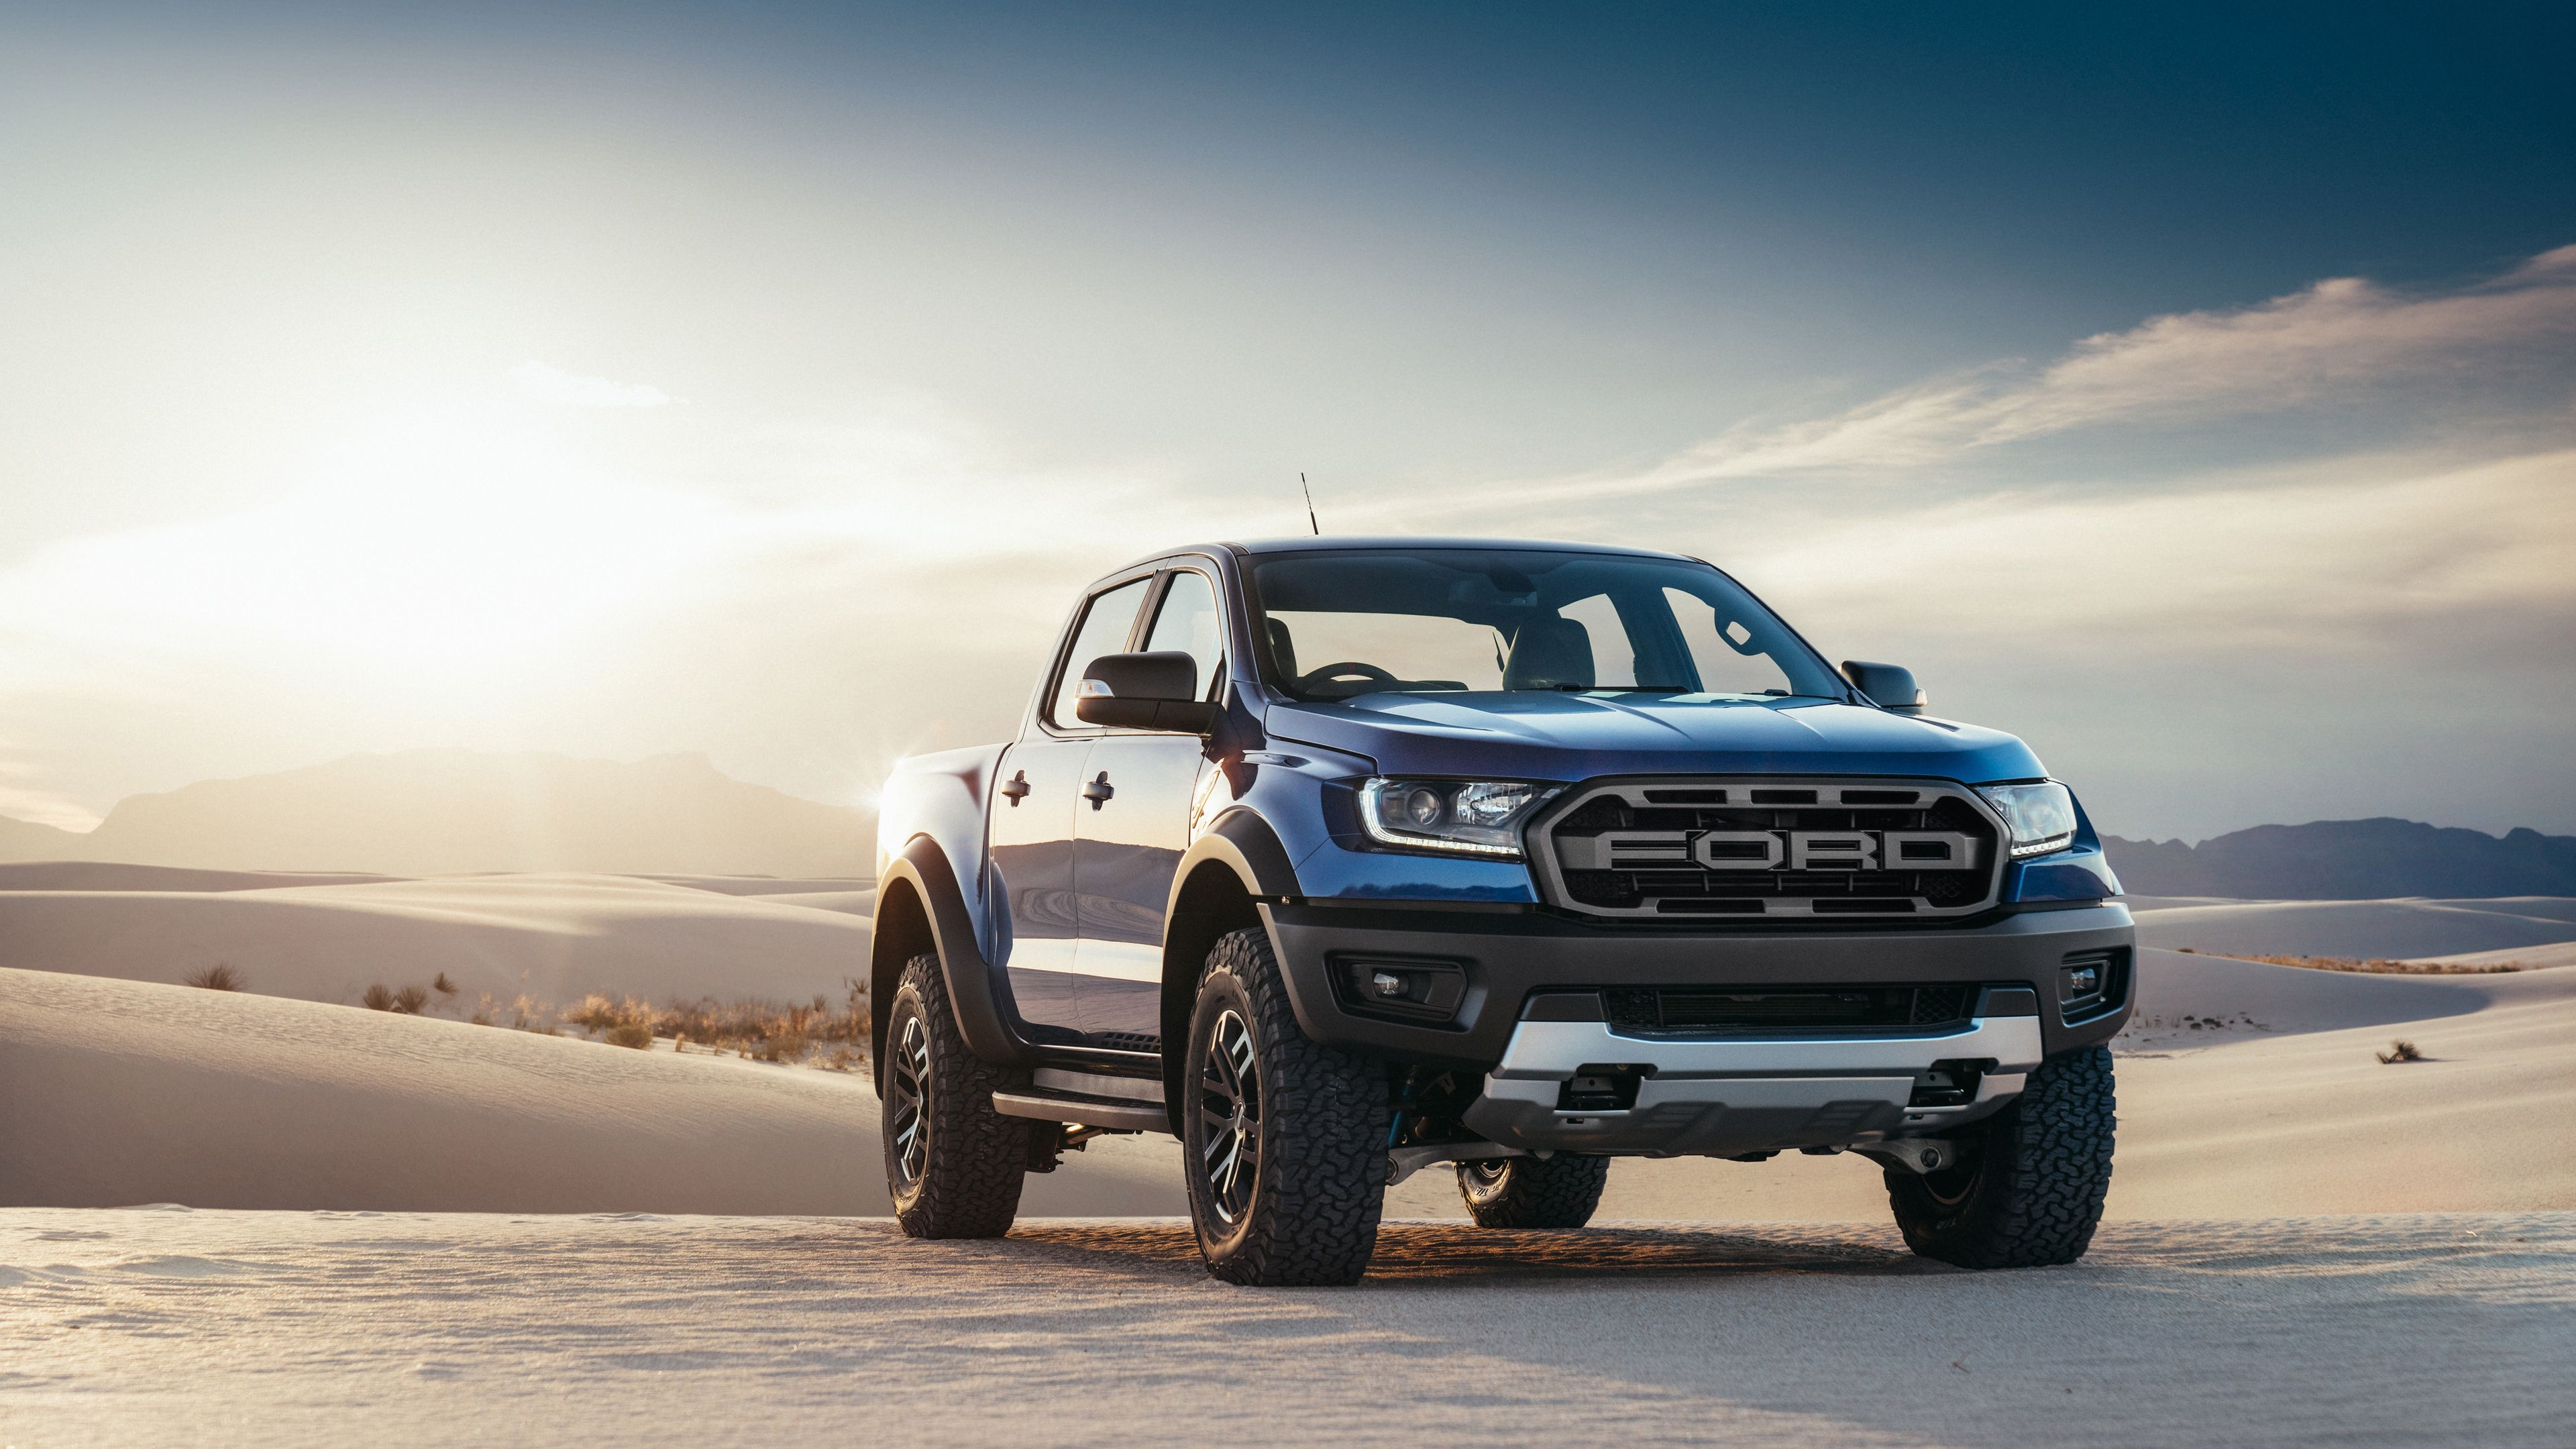 2019 Ford Ranger Raptor Truck Wallpapers Hd Wallpapers Ford Wallpapers Ford Raptor Wallpapers Ford Ranger R 2019 Ford Ranger Ford Ranger Raptor Ford Ranger